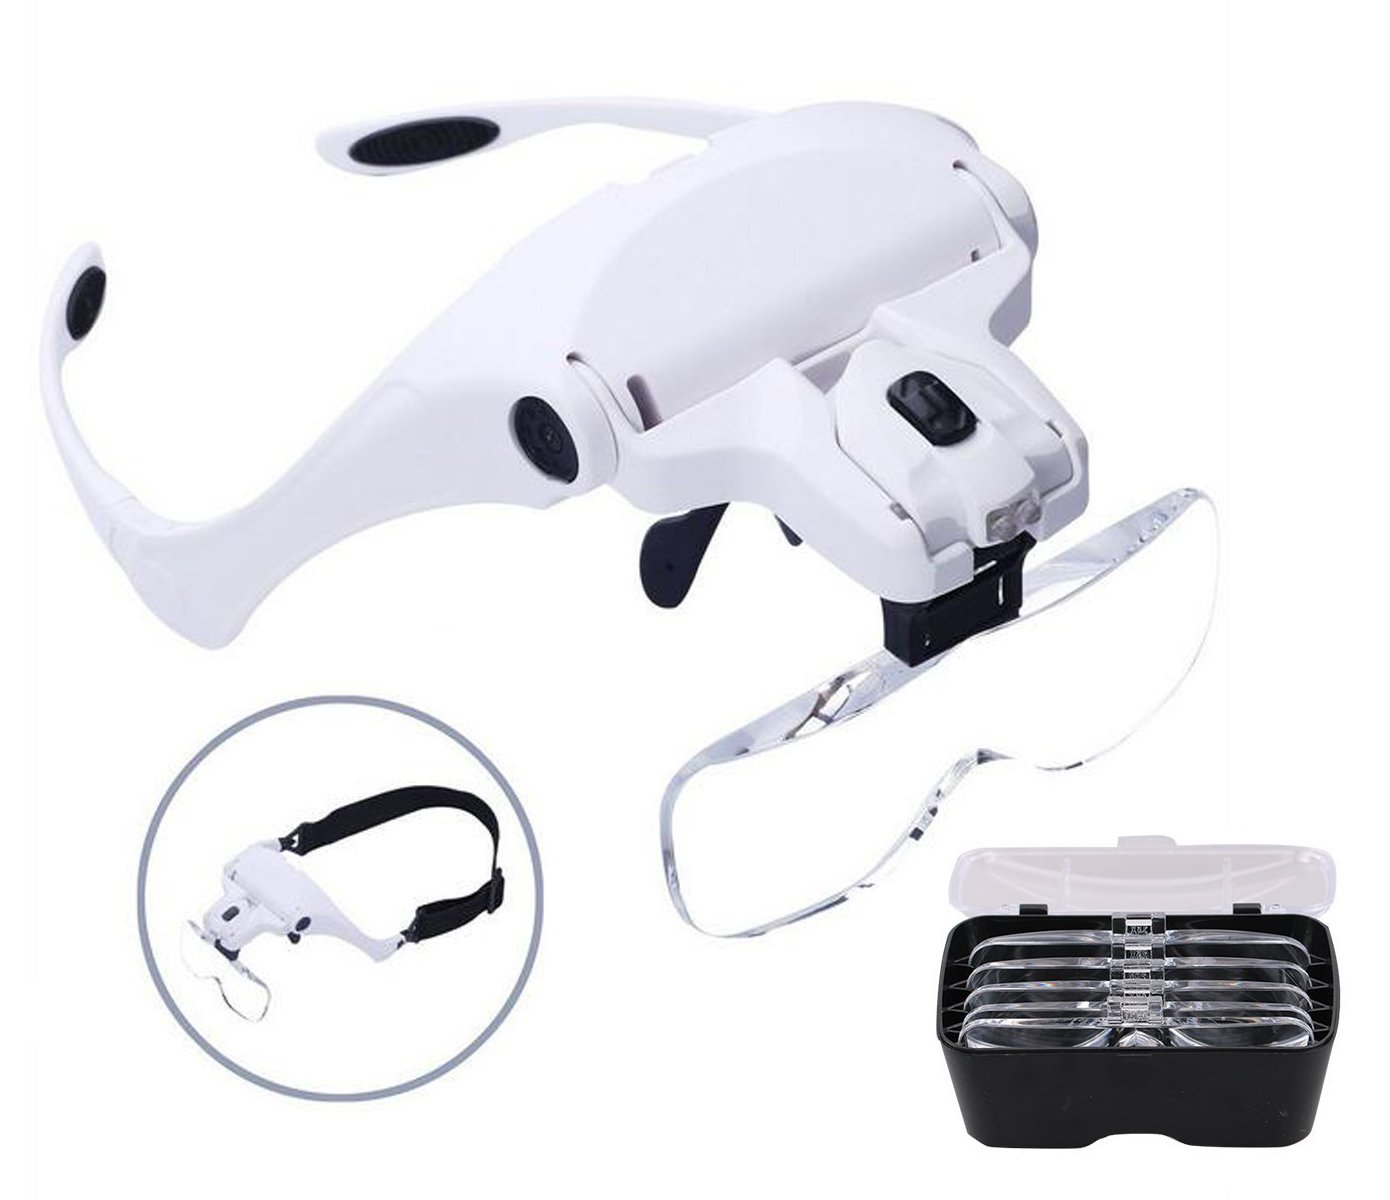 Headband Magnifier Bracket and Headband interchangeable with 2 LED Light 5 Replaceable Lenses for Reading,Jewelry Loupe, Watch Electronic Repair(1.0X, 1.5X, 2.0X, 2.5X, 3.5X)